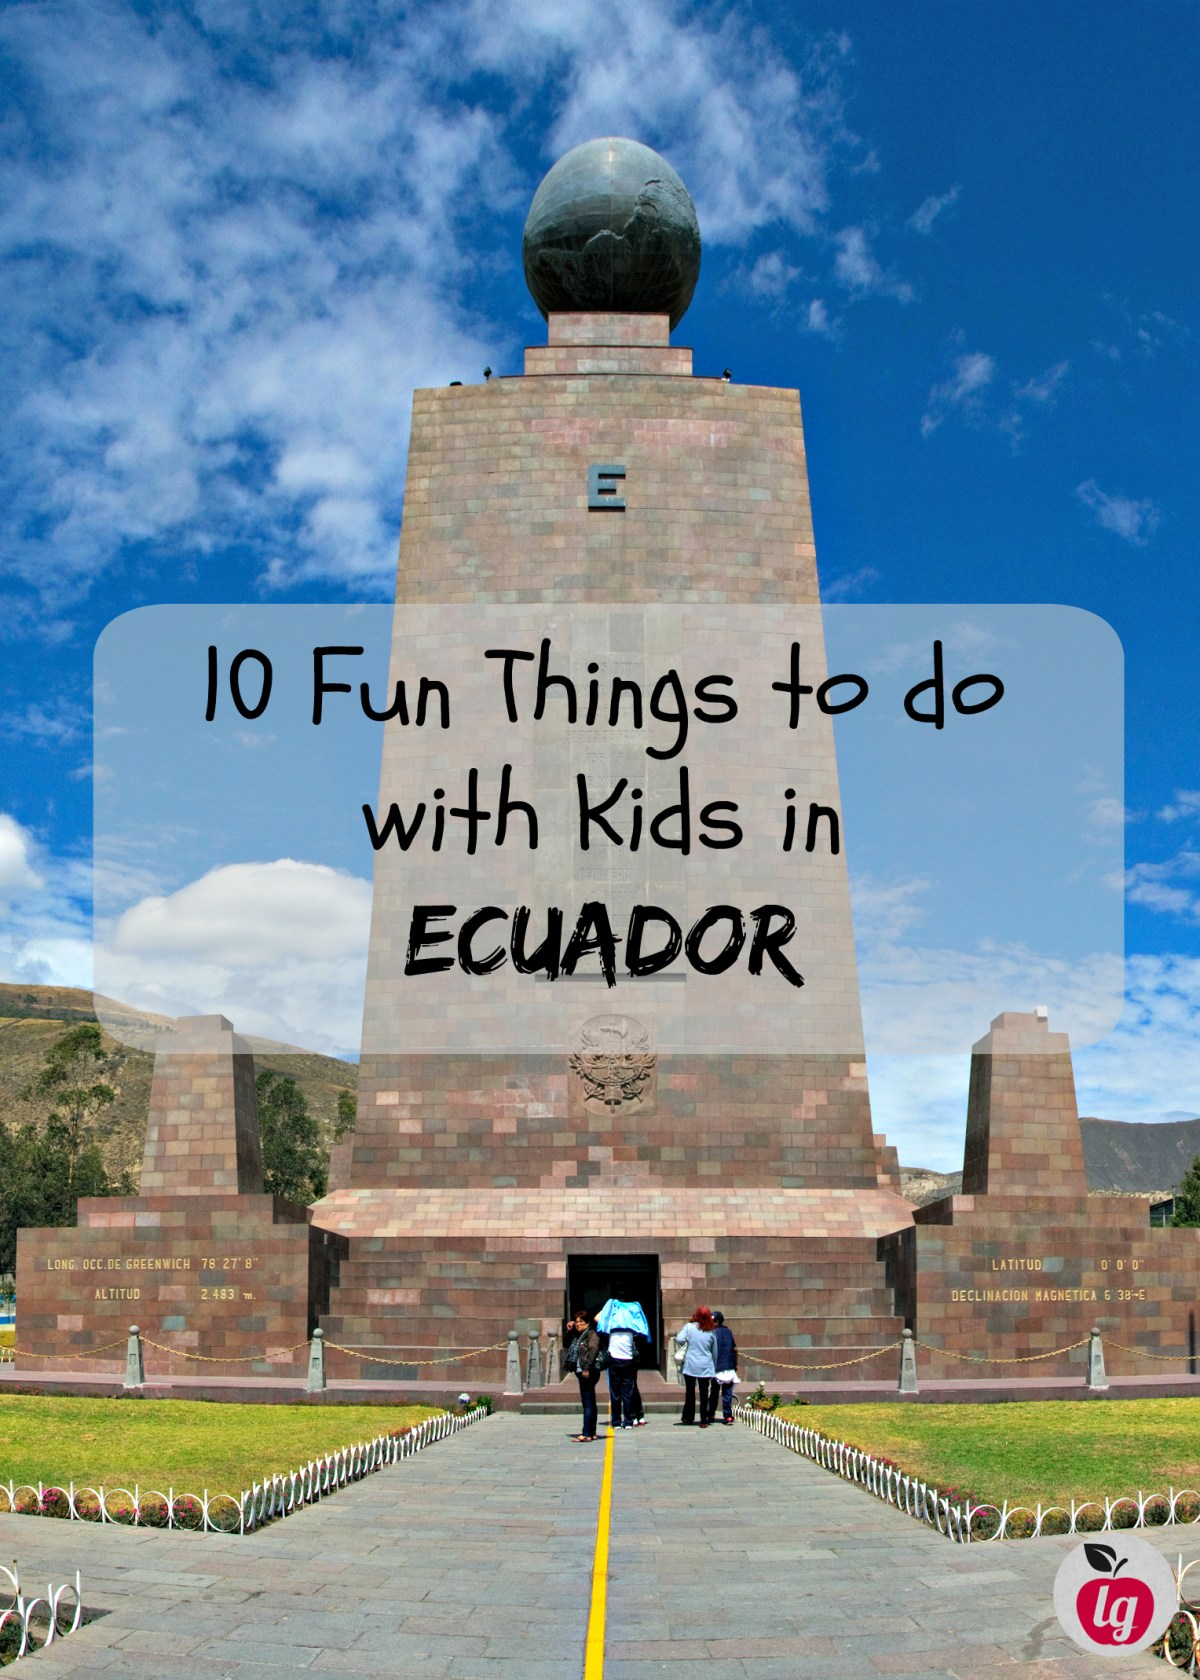 Fun things to do with kids in Ecuador